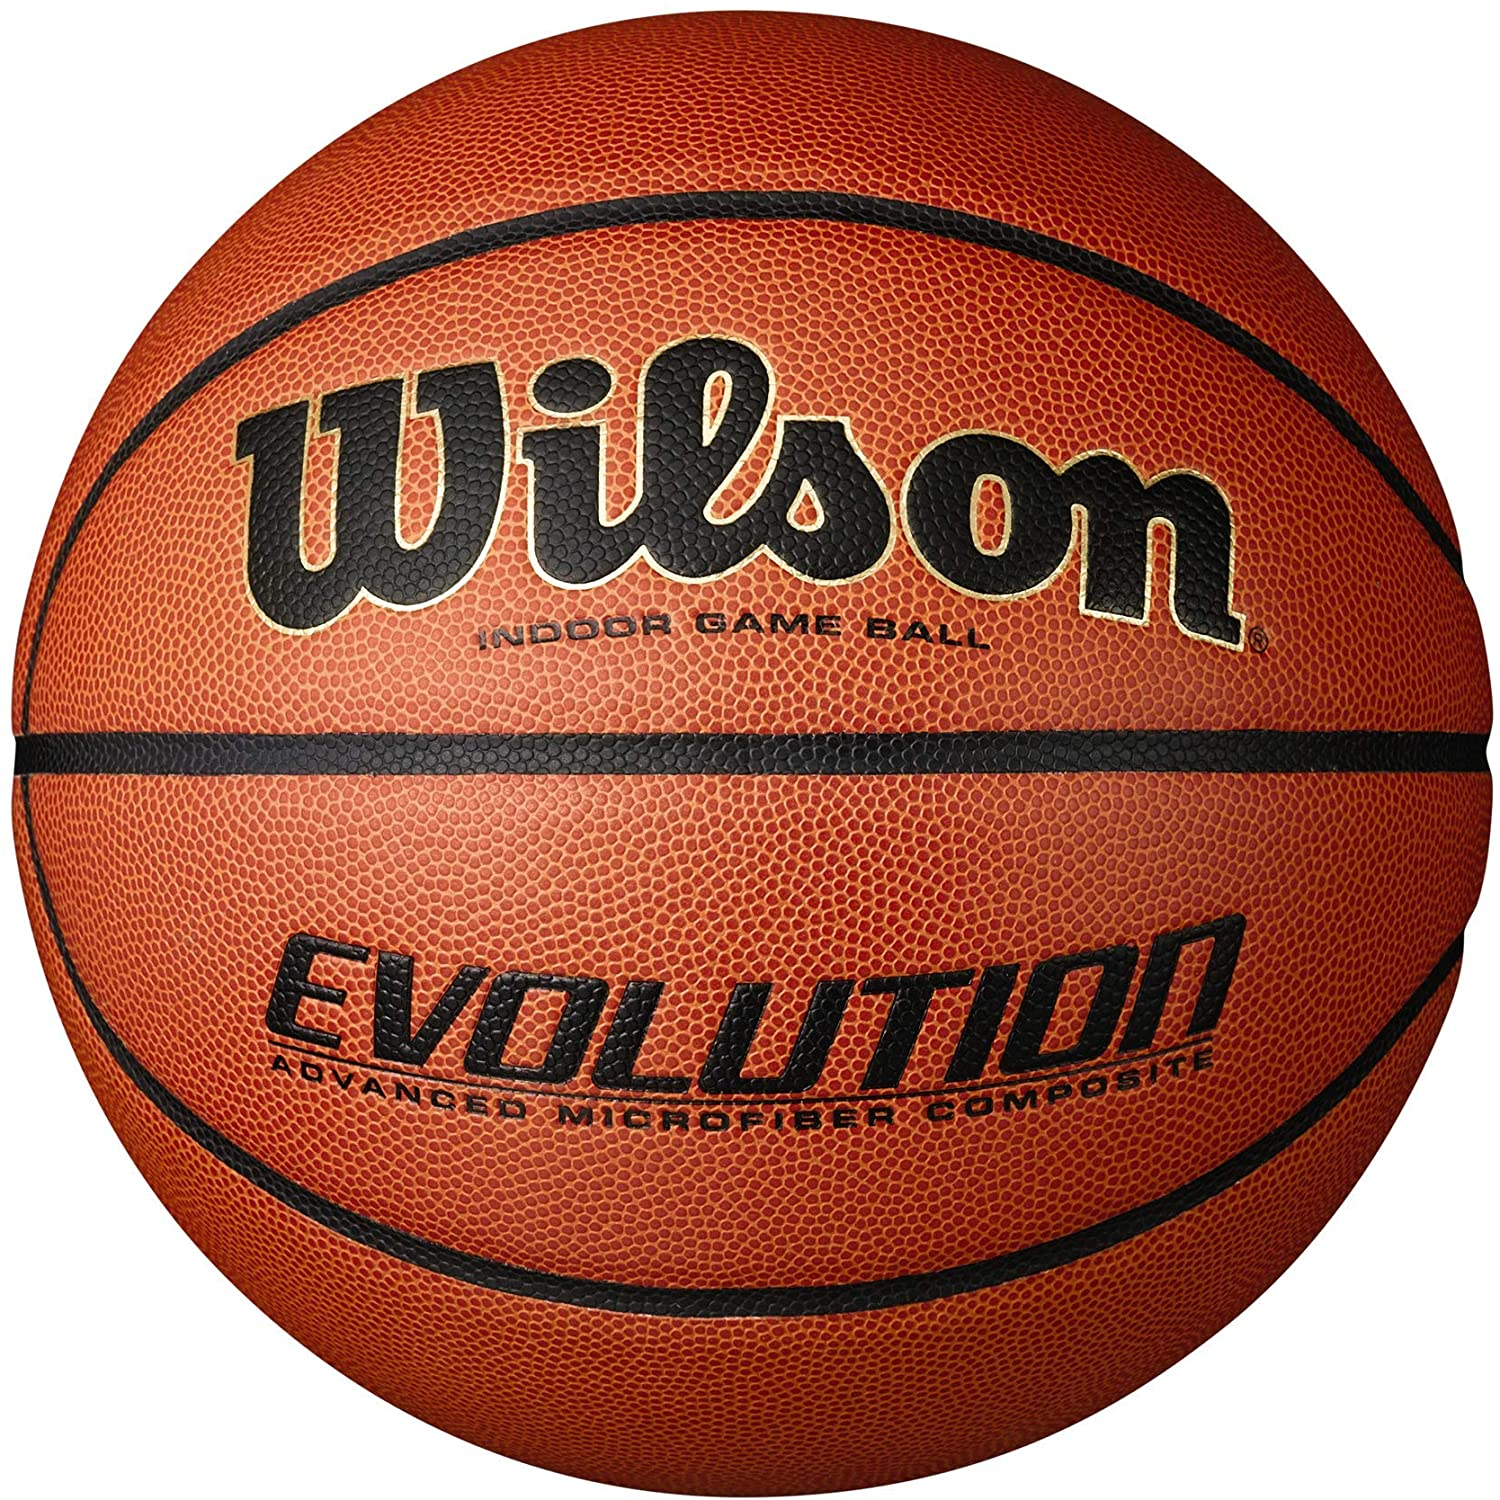 """Wilson Evolution Game Basketball, Black, Official Size - 29.5"""" : Sports & Outdoors"""